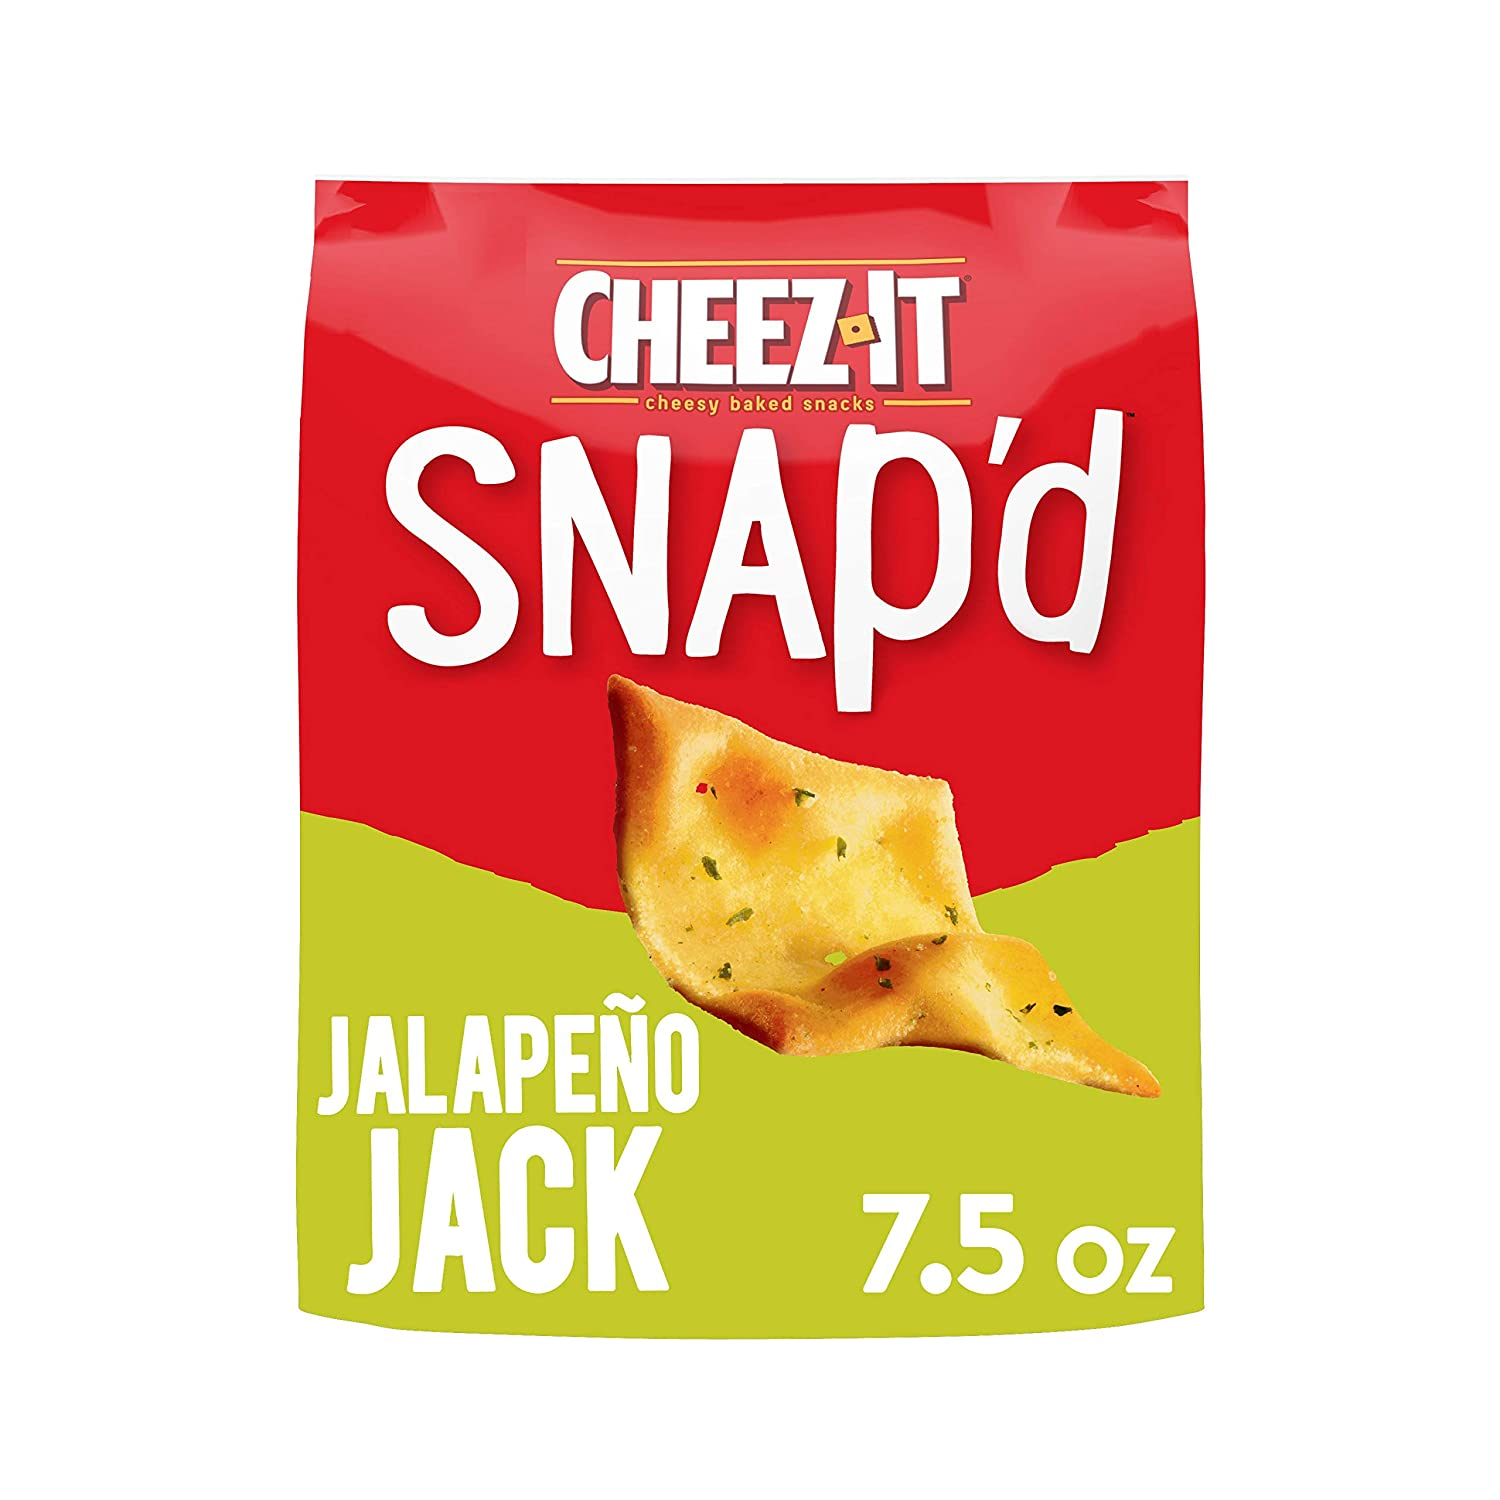 Cheez-It Snap'd Cheesy Baked Snacks Jalapeno Ounce Jack Max 82% OFF 7.5 New York Mall